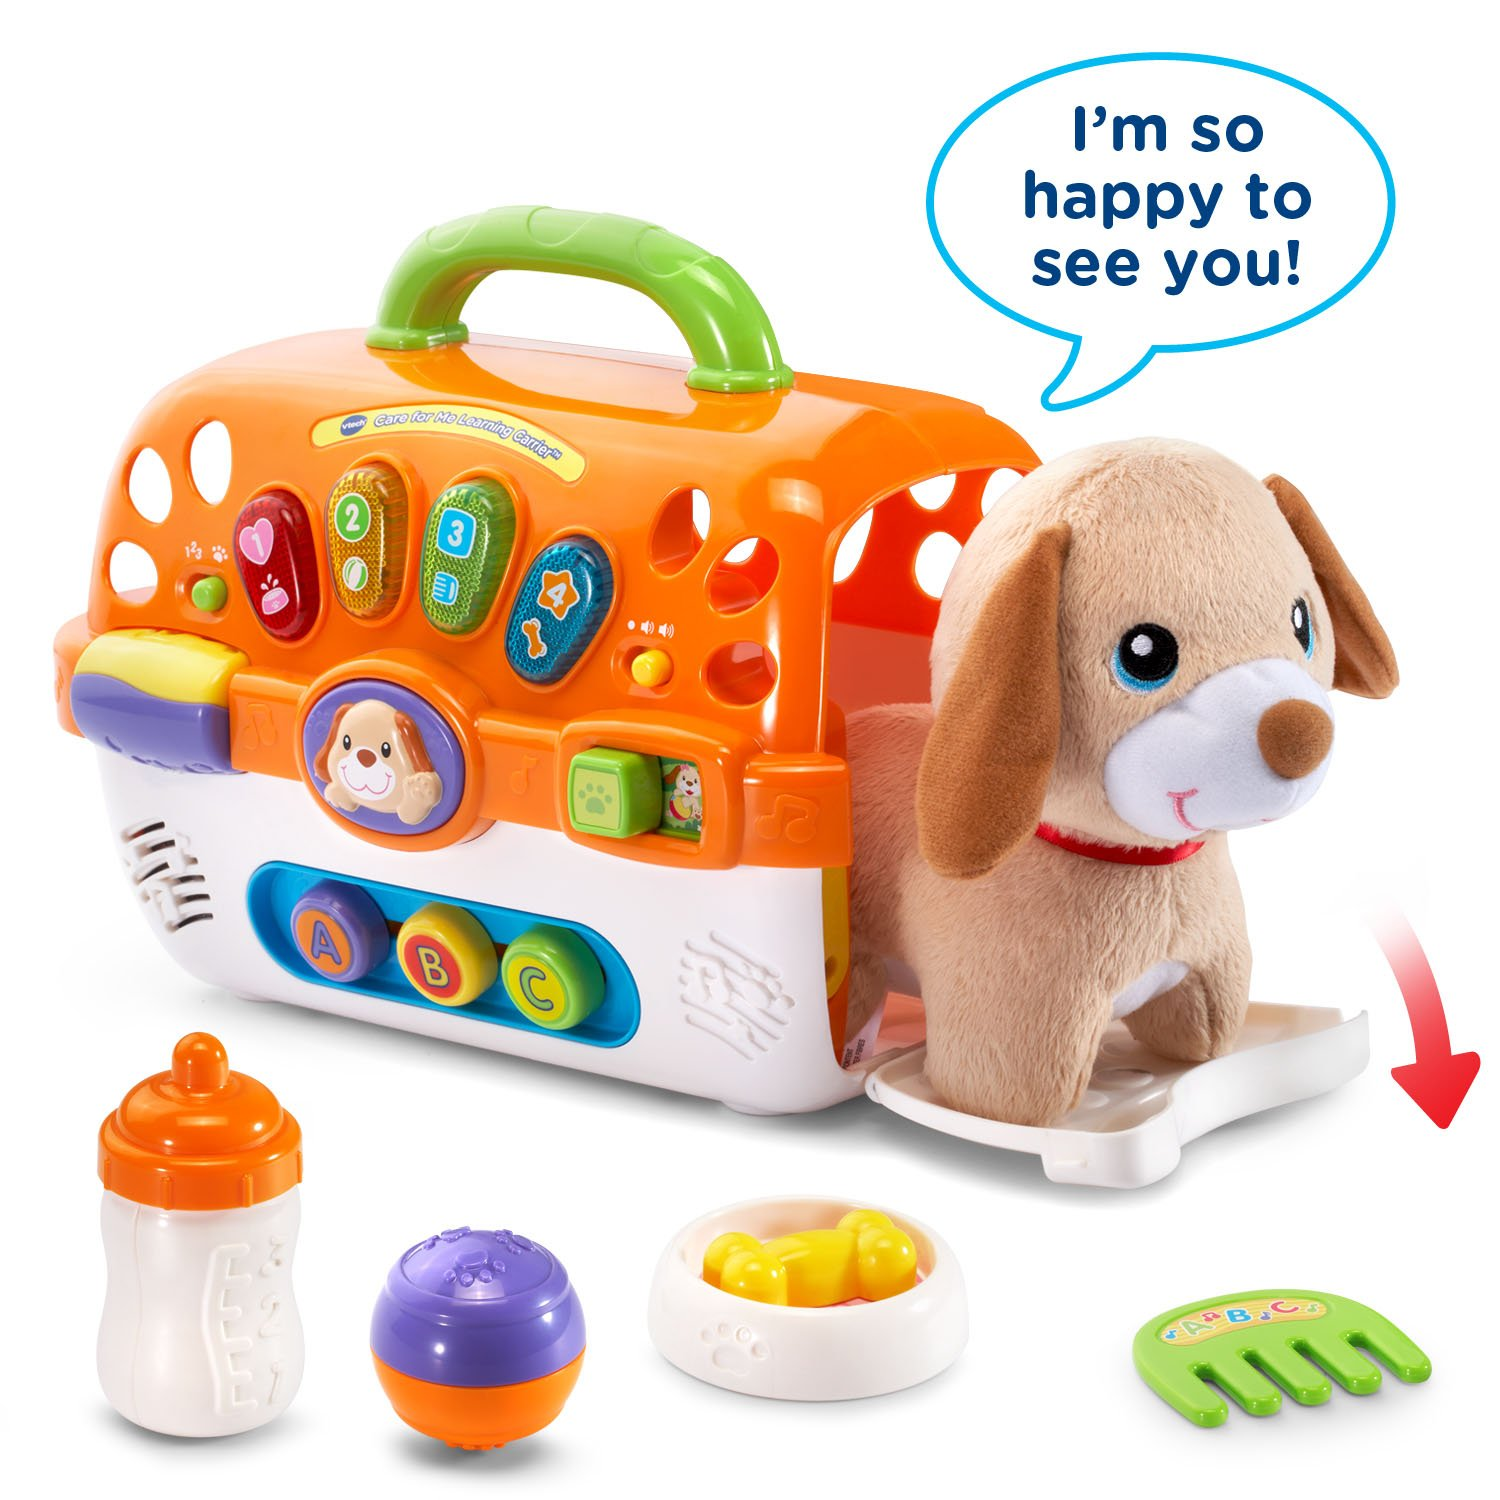 VTech Care for Me Learning Carrier Toy, Orange by VTech (Image #1)